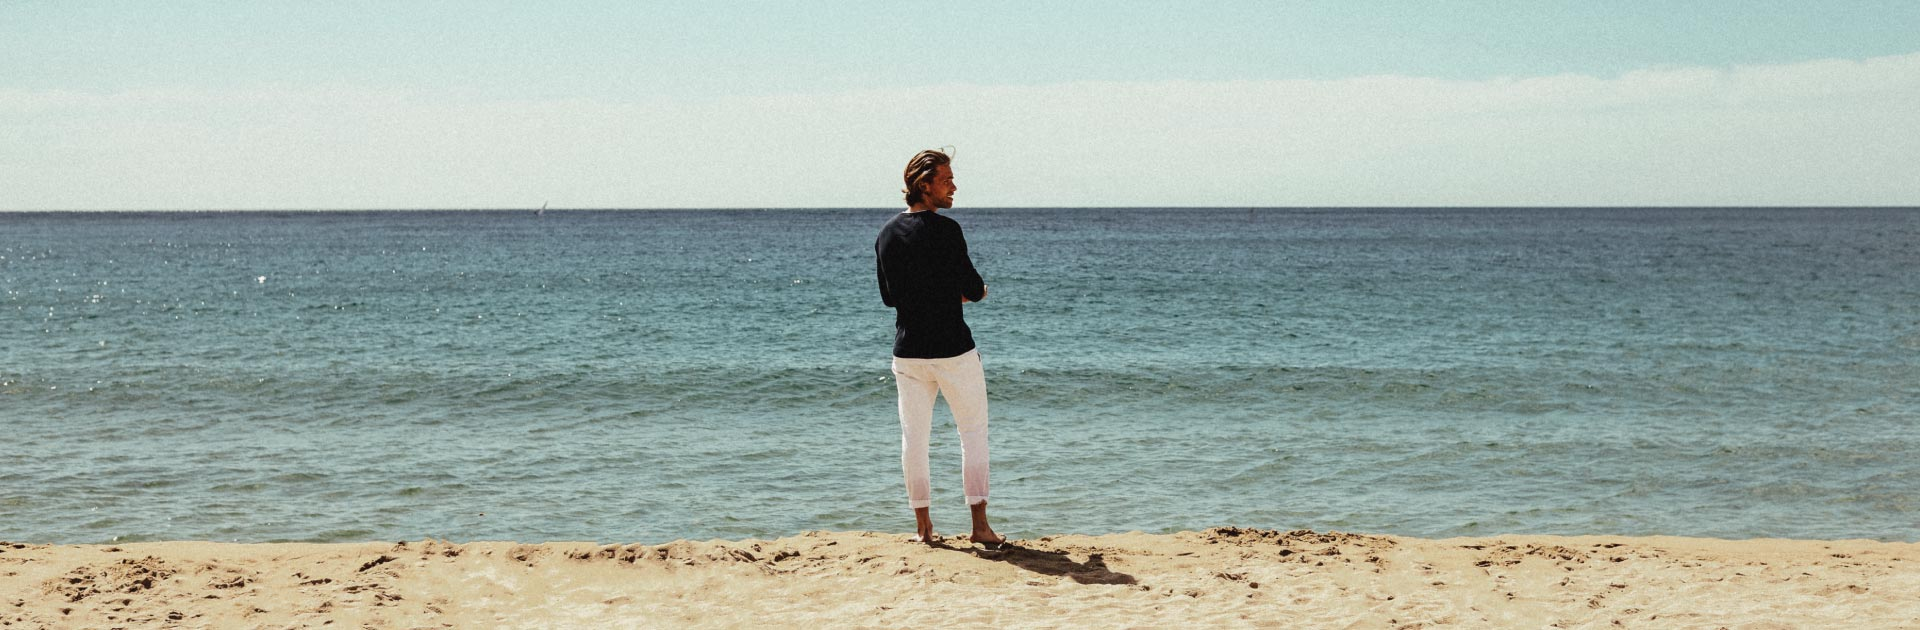 Man in blue shirt and white pants standing on the beach looking to the side